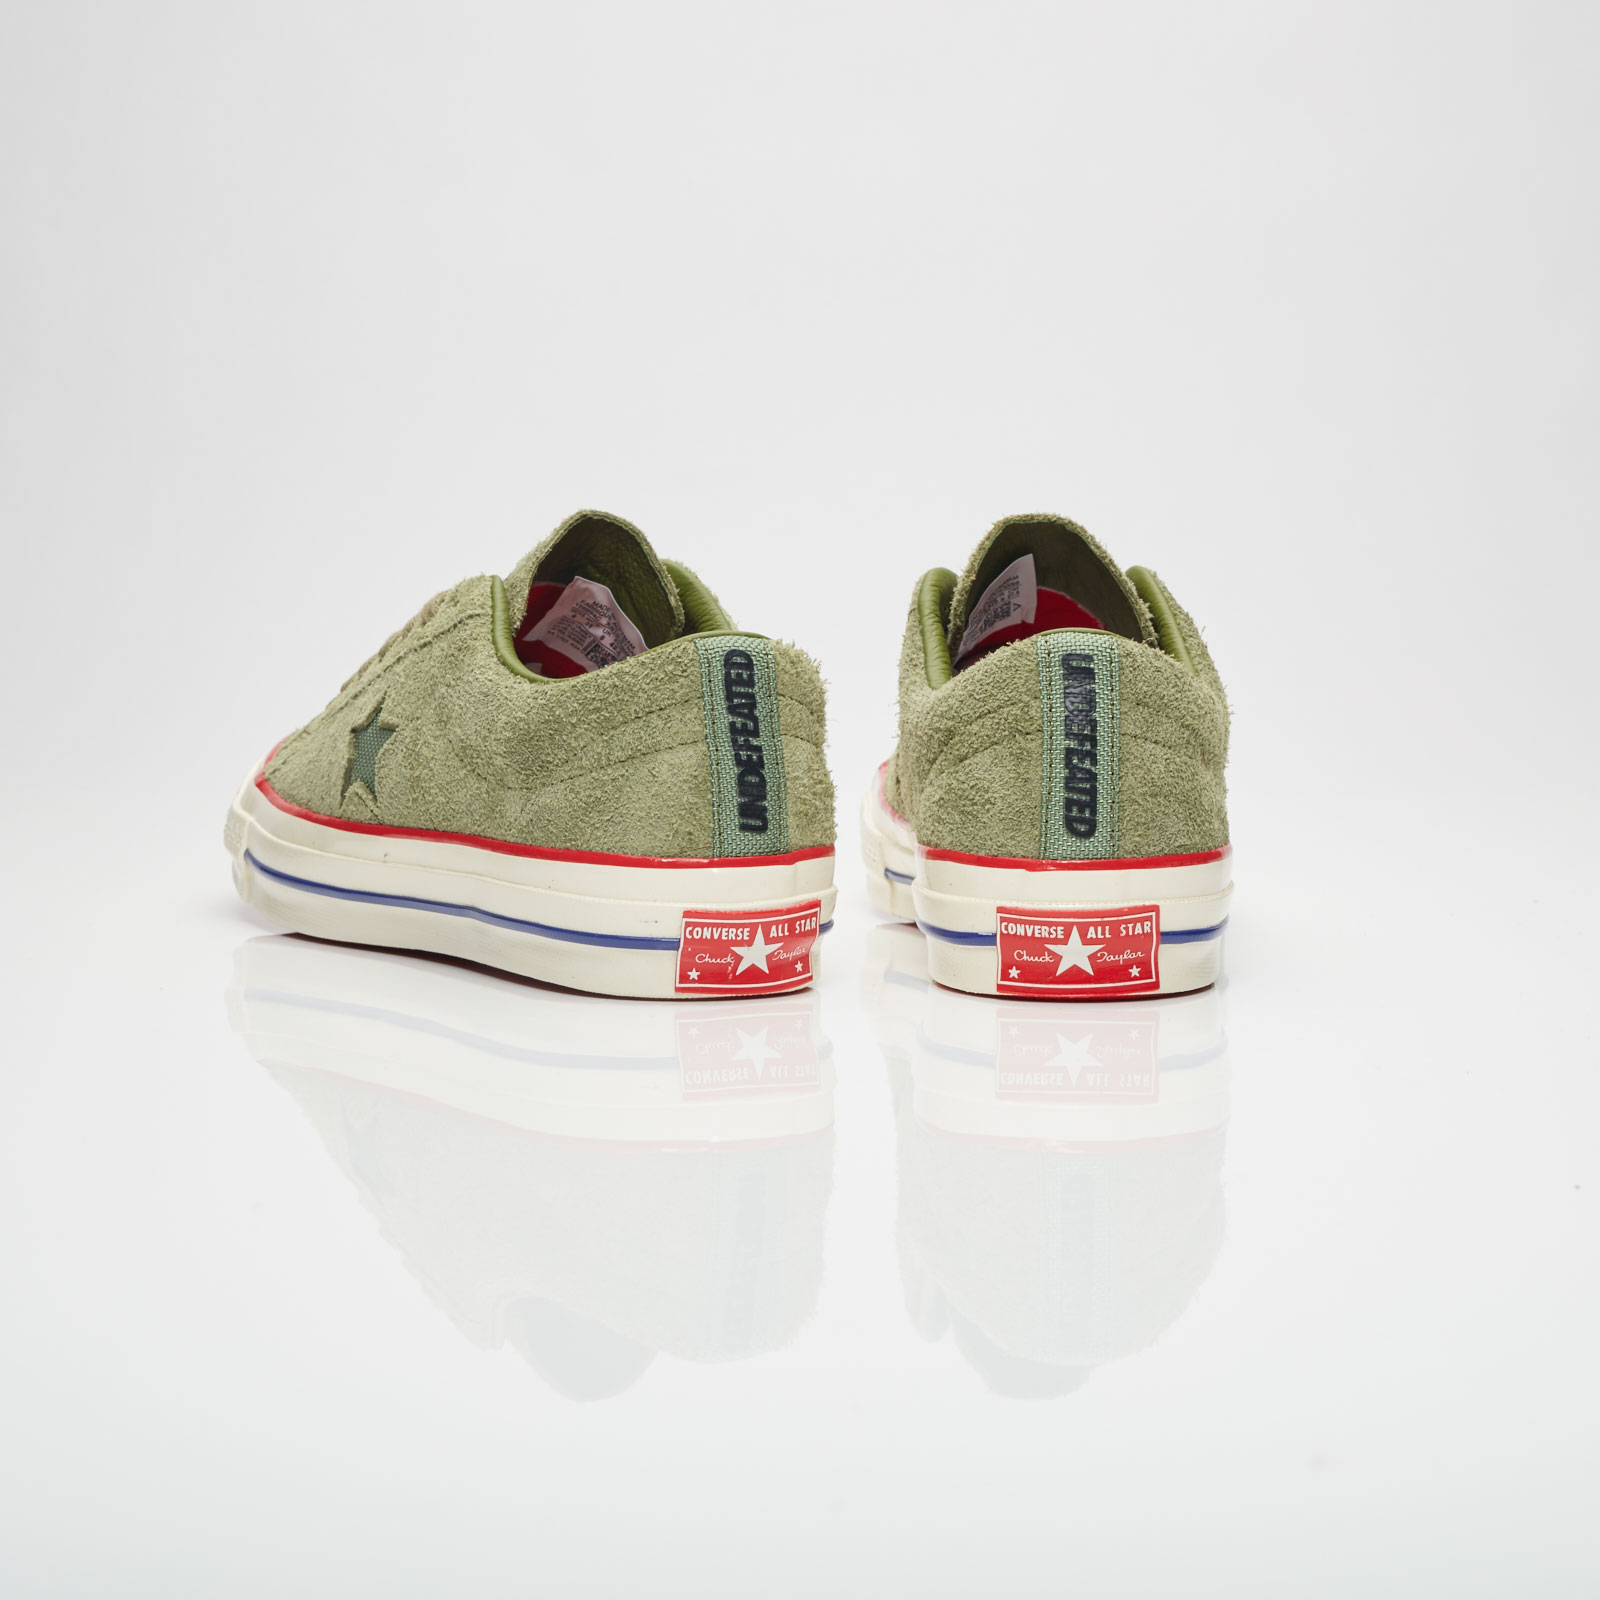 f4b97ace8a1a Converse One Star x UNDFTD - 158894c - Sneakersnstuff